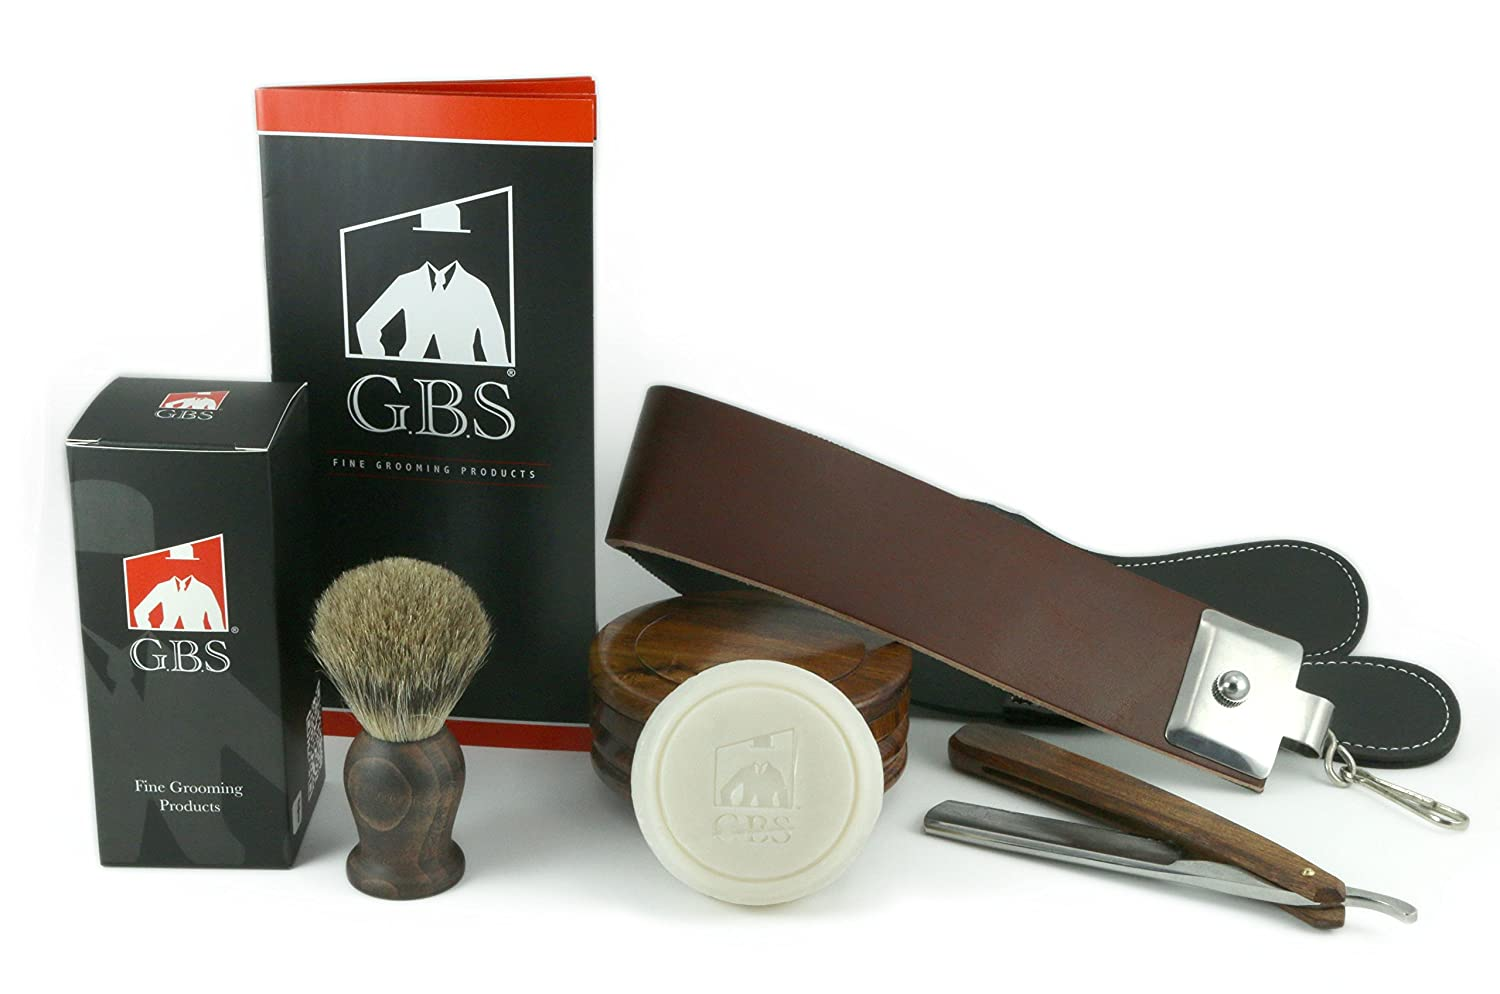 4 Piece Wood Shaving Set - Soap, Wood Bowl, Wood Straight Razor and Wood Badger Brush by GBS